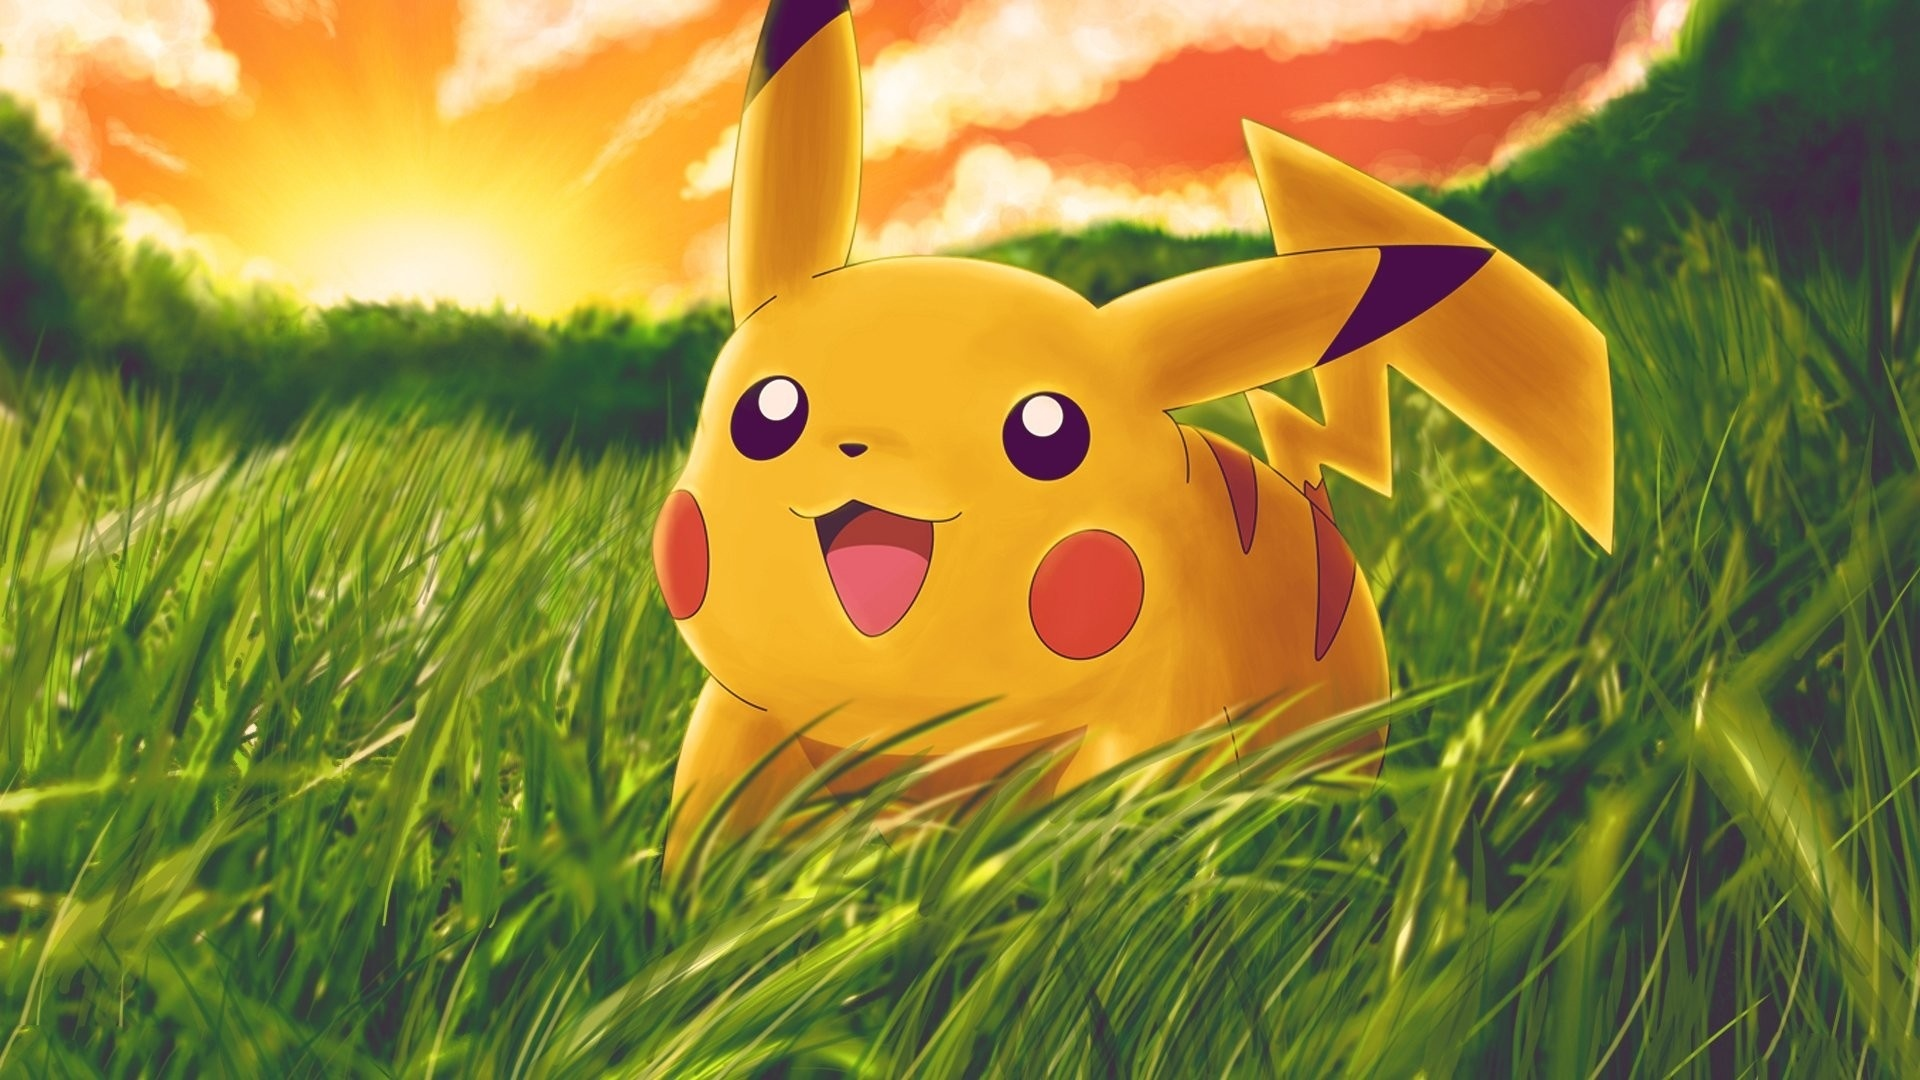 Pikachu desktop wallpaper free download